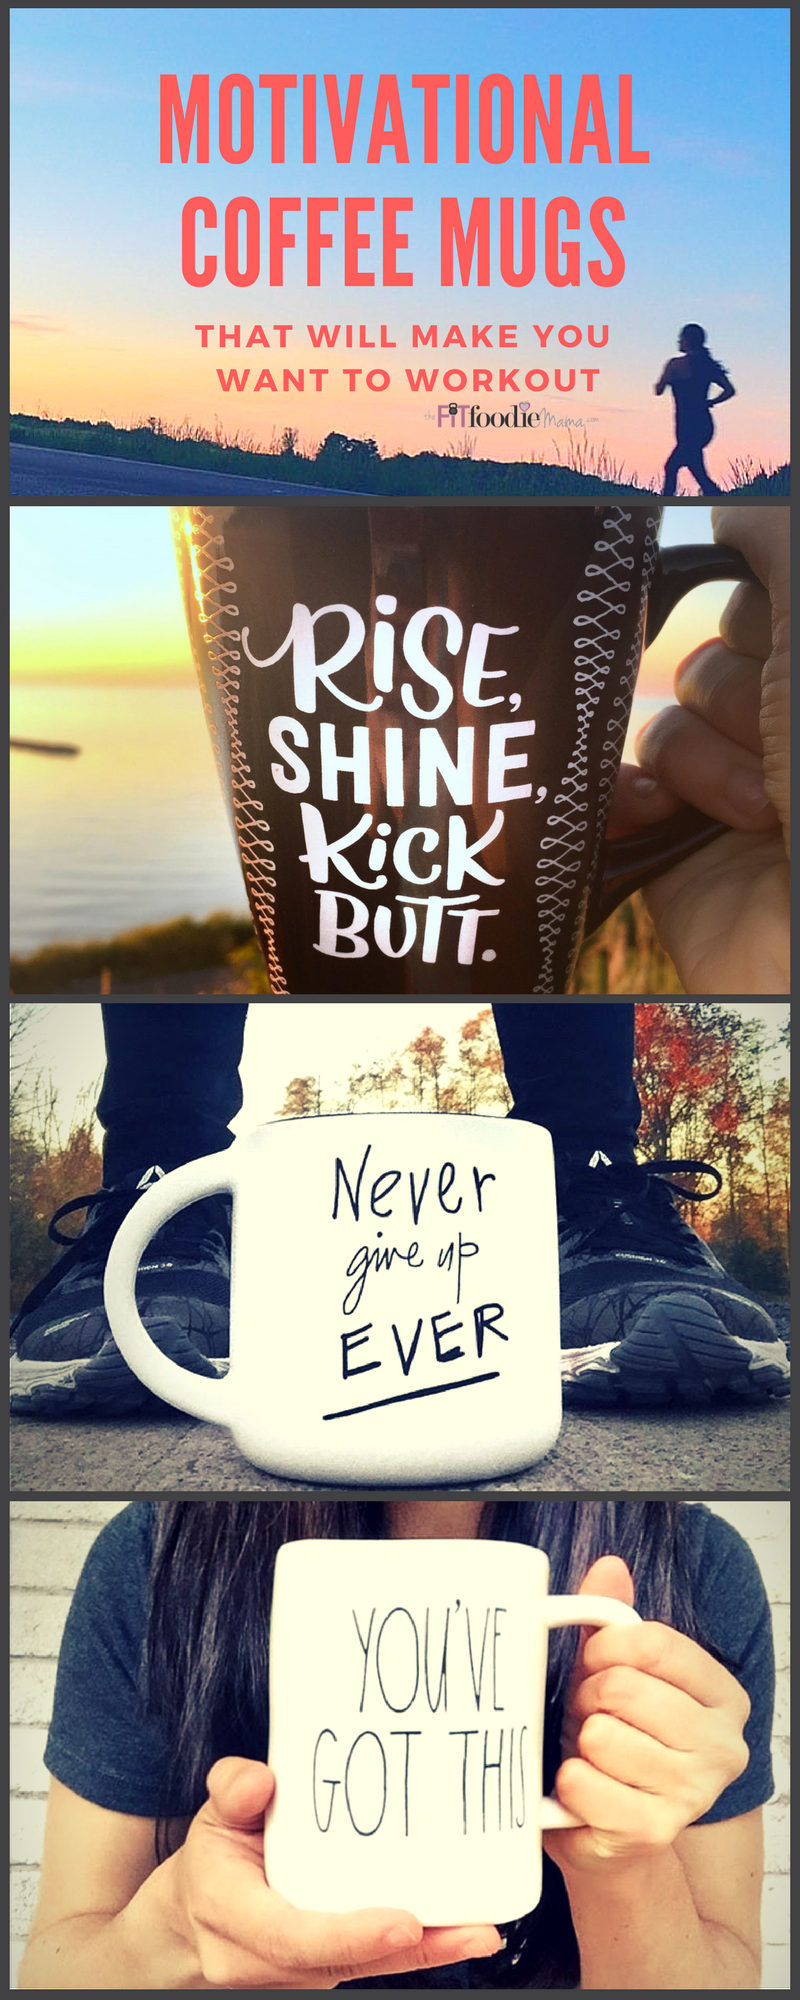 Motivational Coffee Mugs That Will Make You Want to Workout!